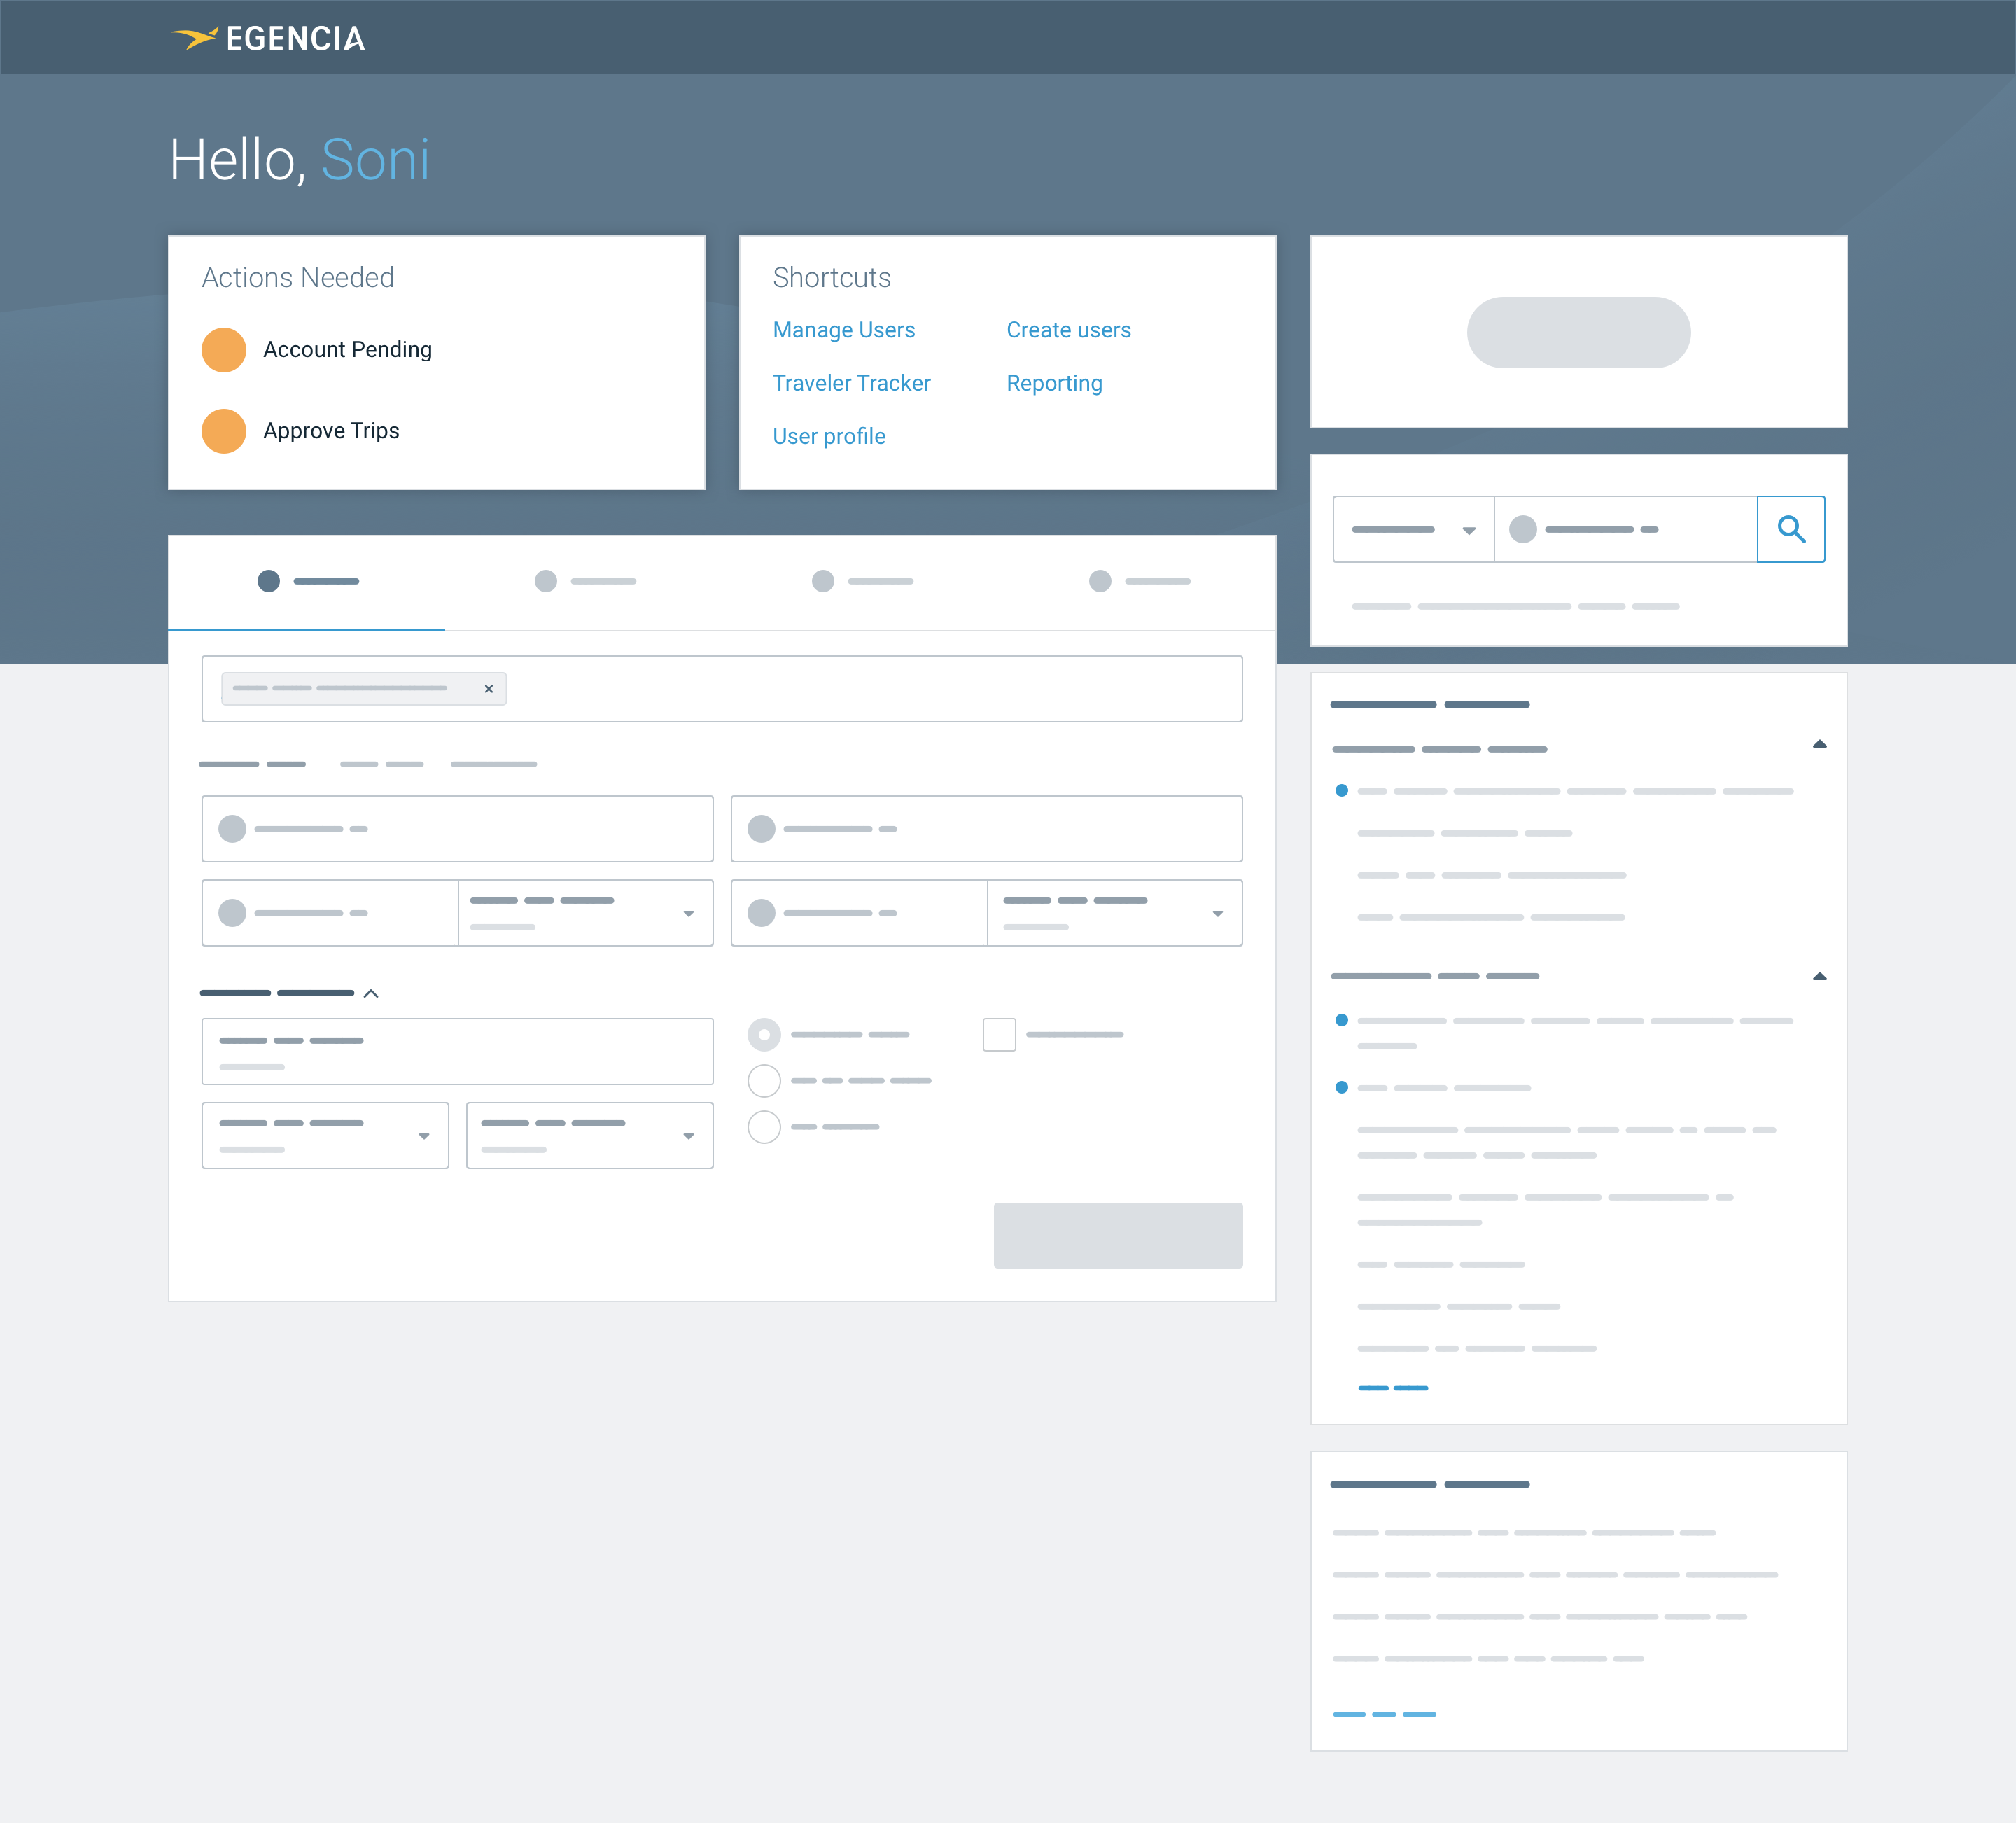 High fidelity wireframe of a new design for the homepage with travel manager actions at the top of the page